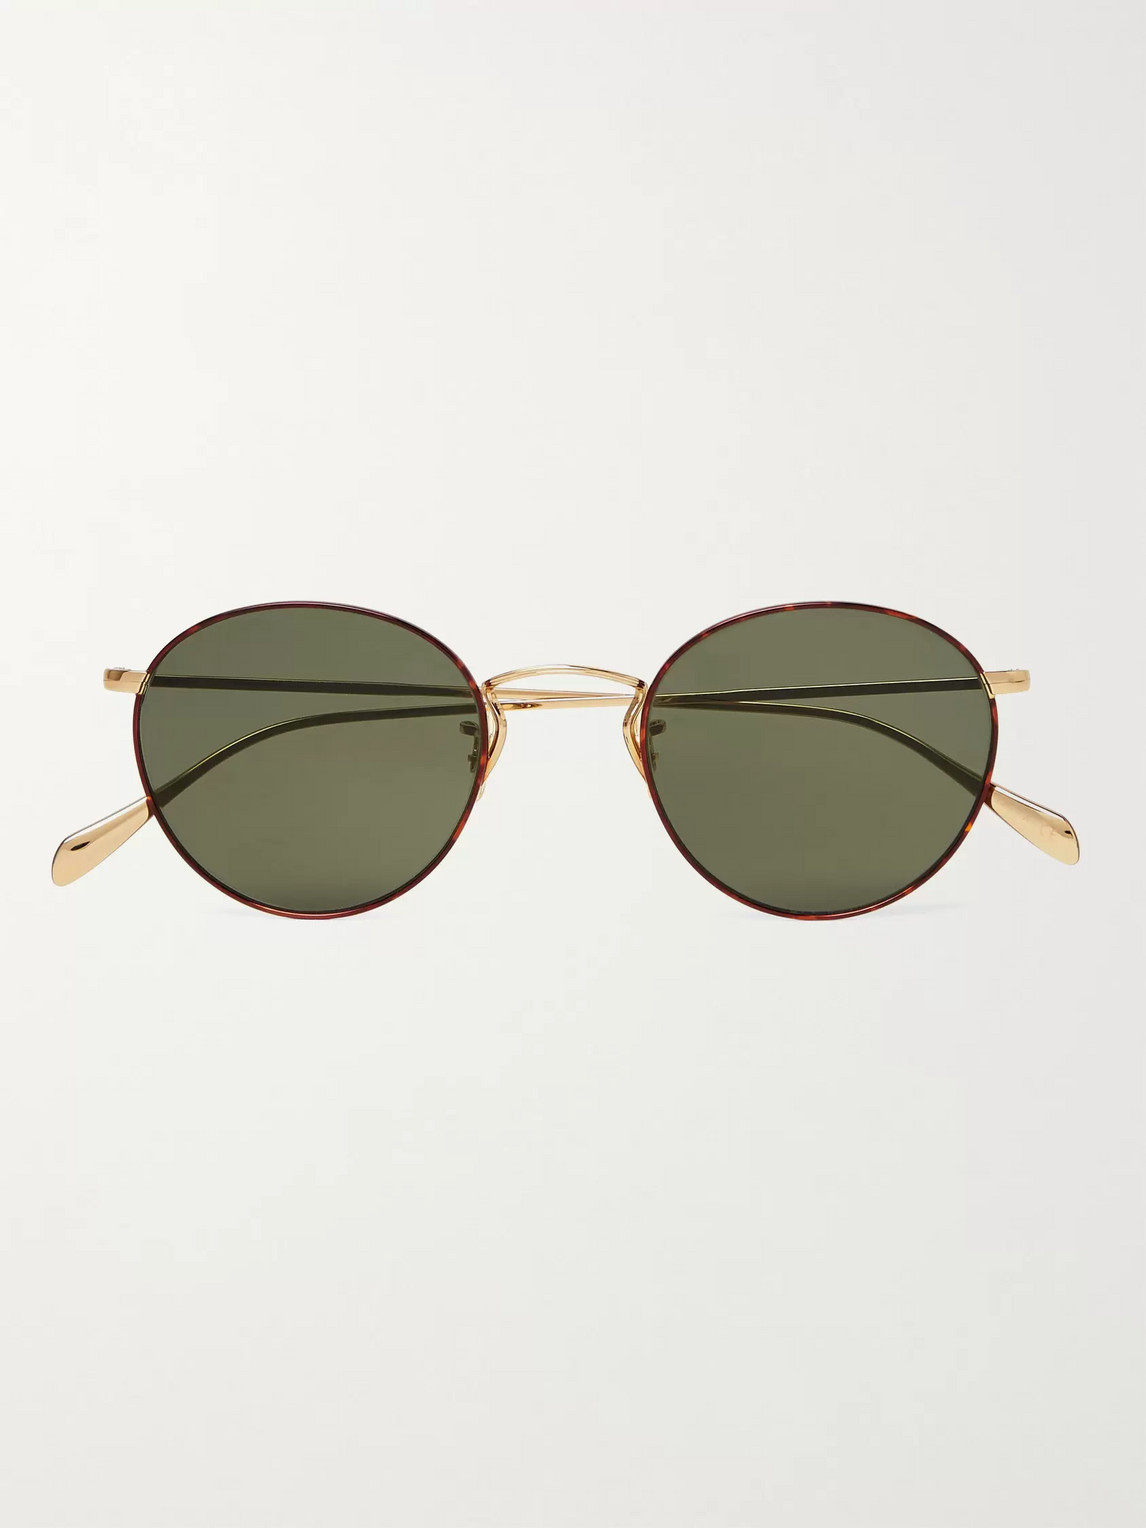 Oliver Peoples Round-frame Tortoiseshell Acetate And Gold-tone Sunglasses